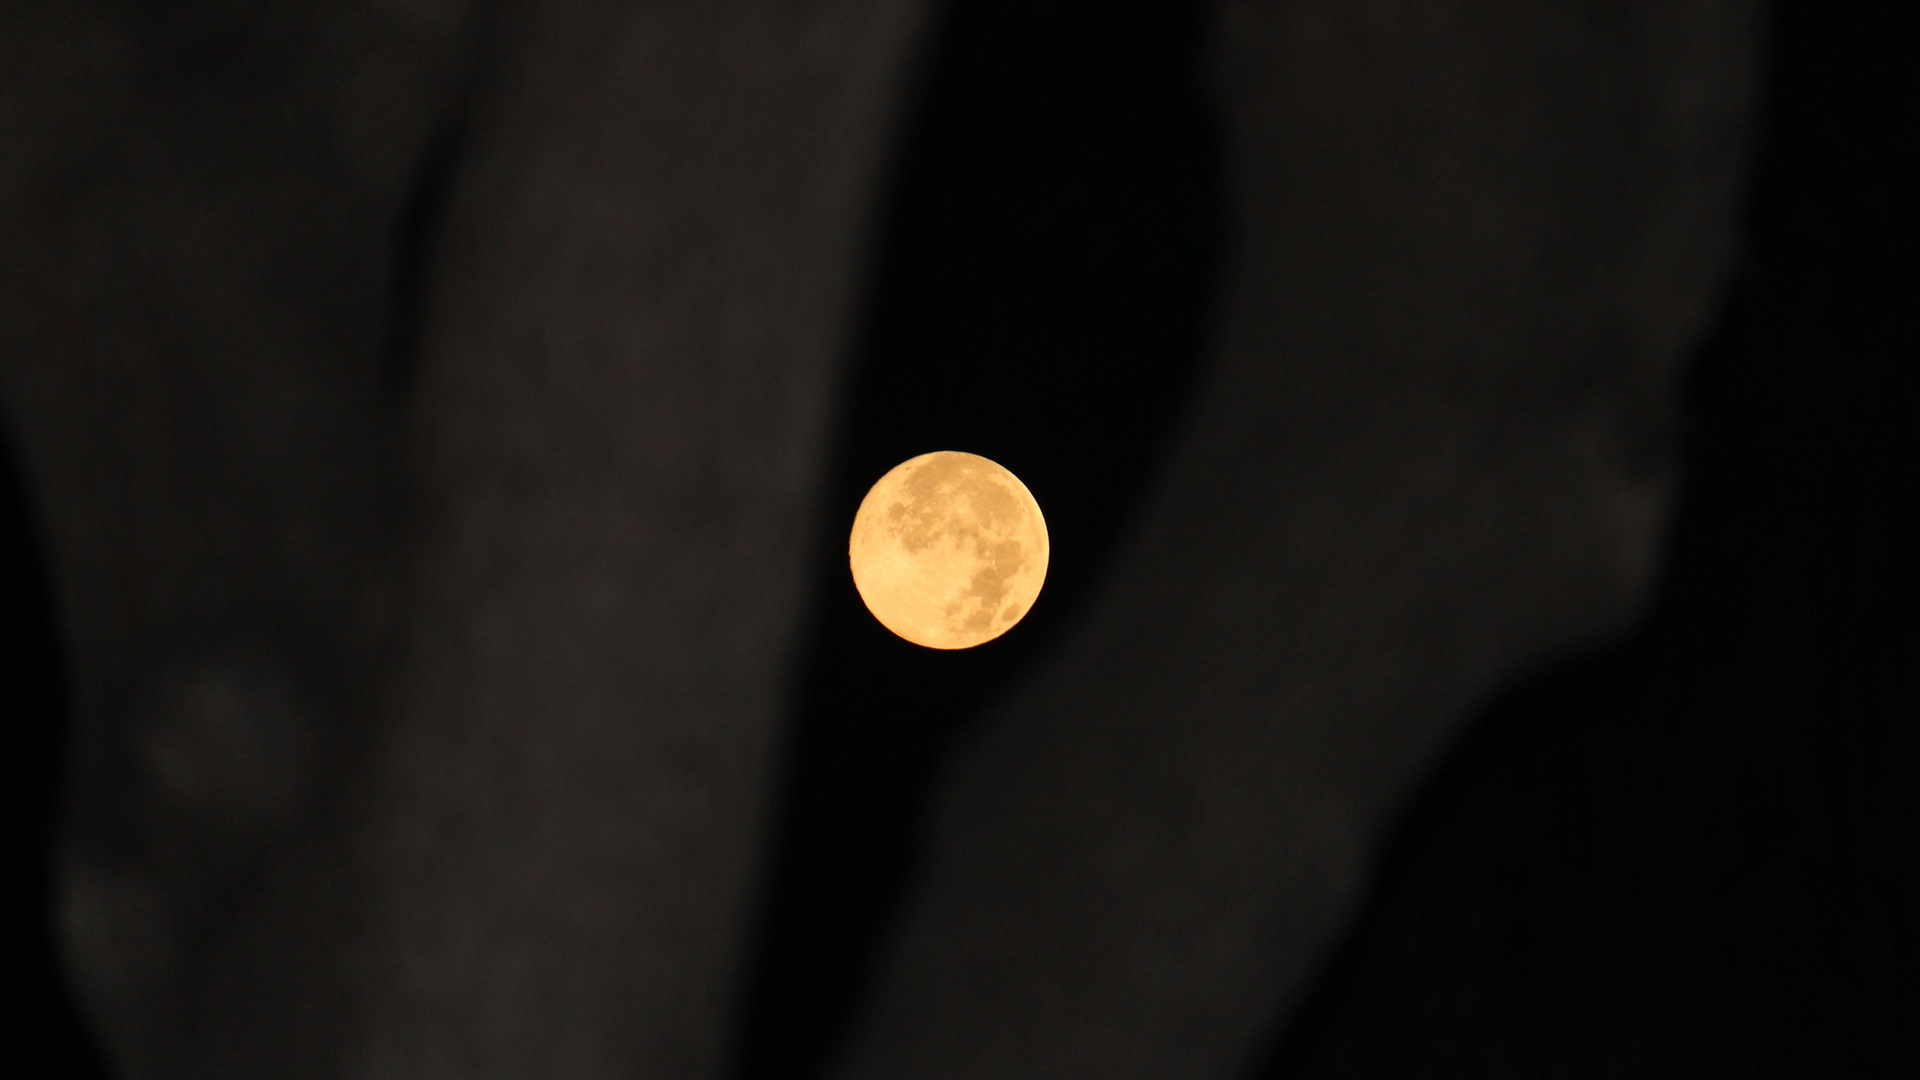 Supermoon on August 10, 2014